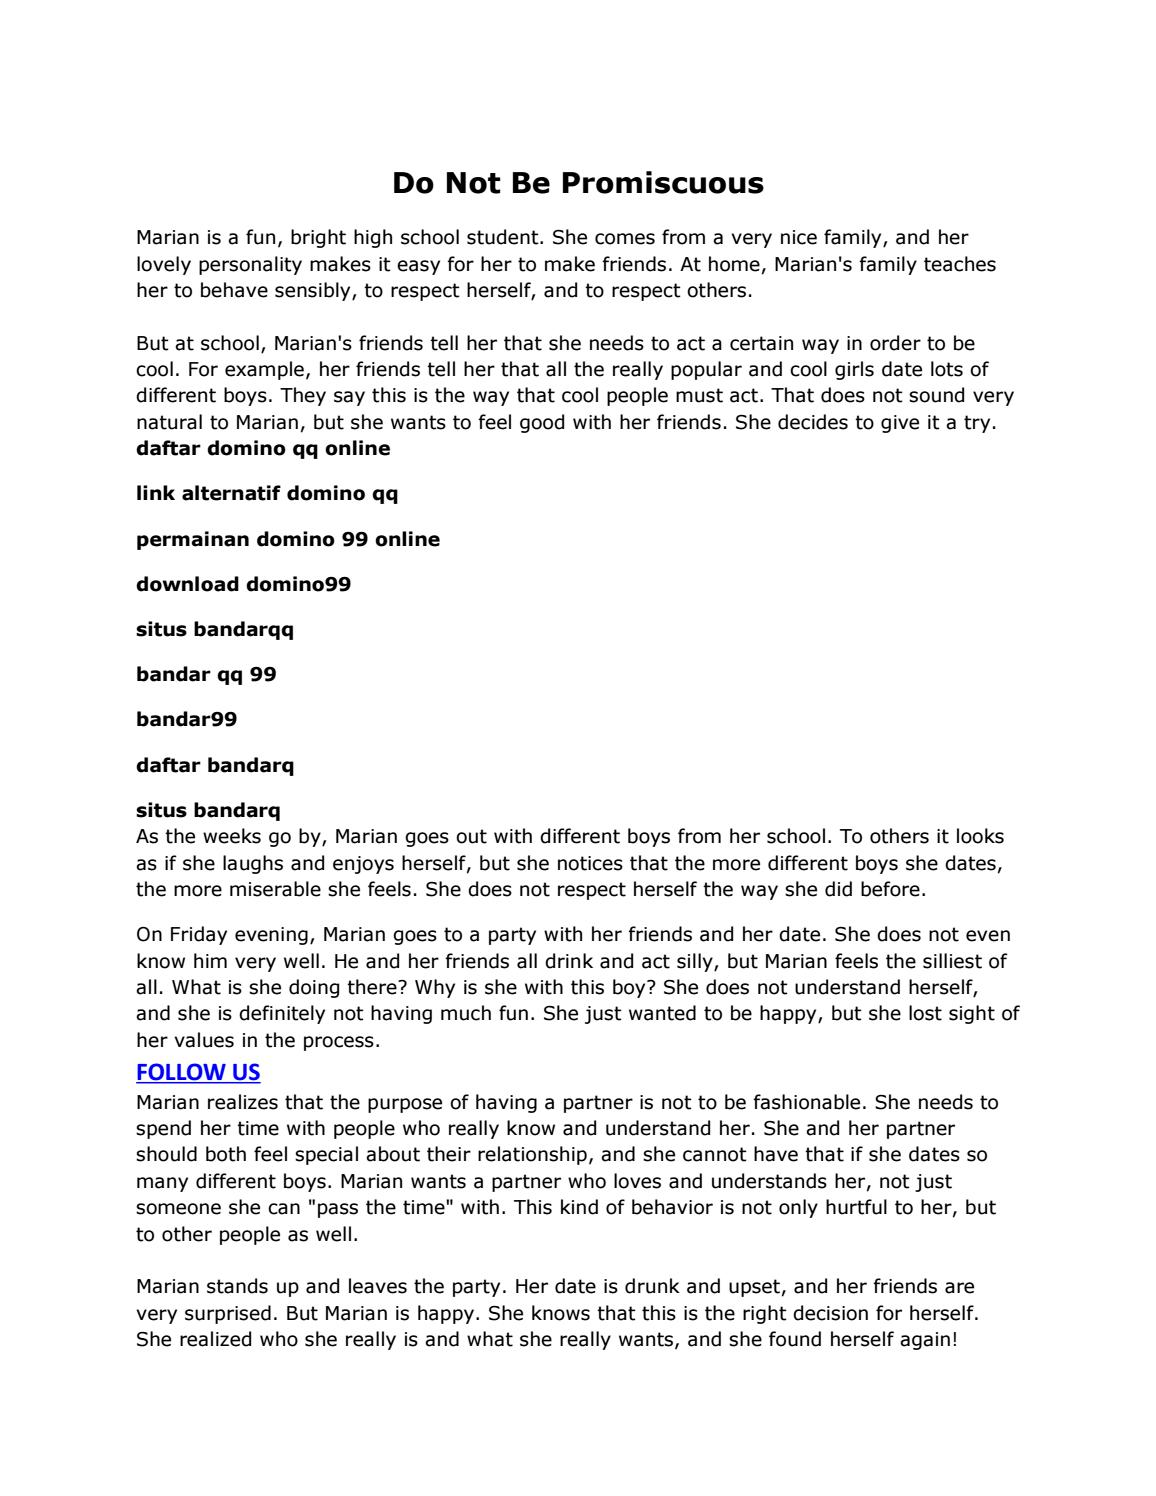 Do Not Be Promiscuous By Aleshafilia94 Issuu